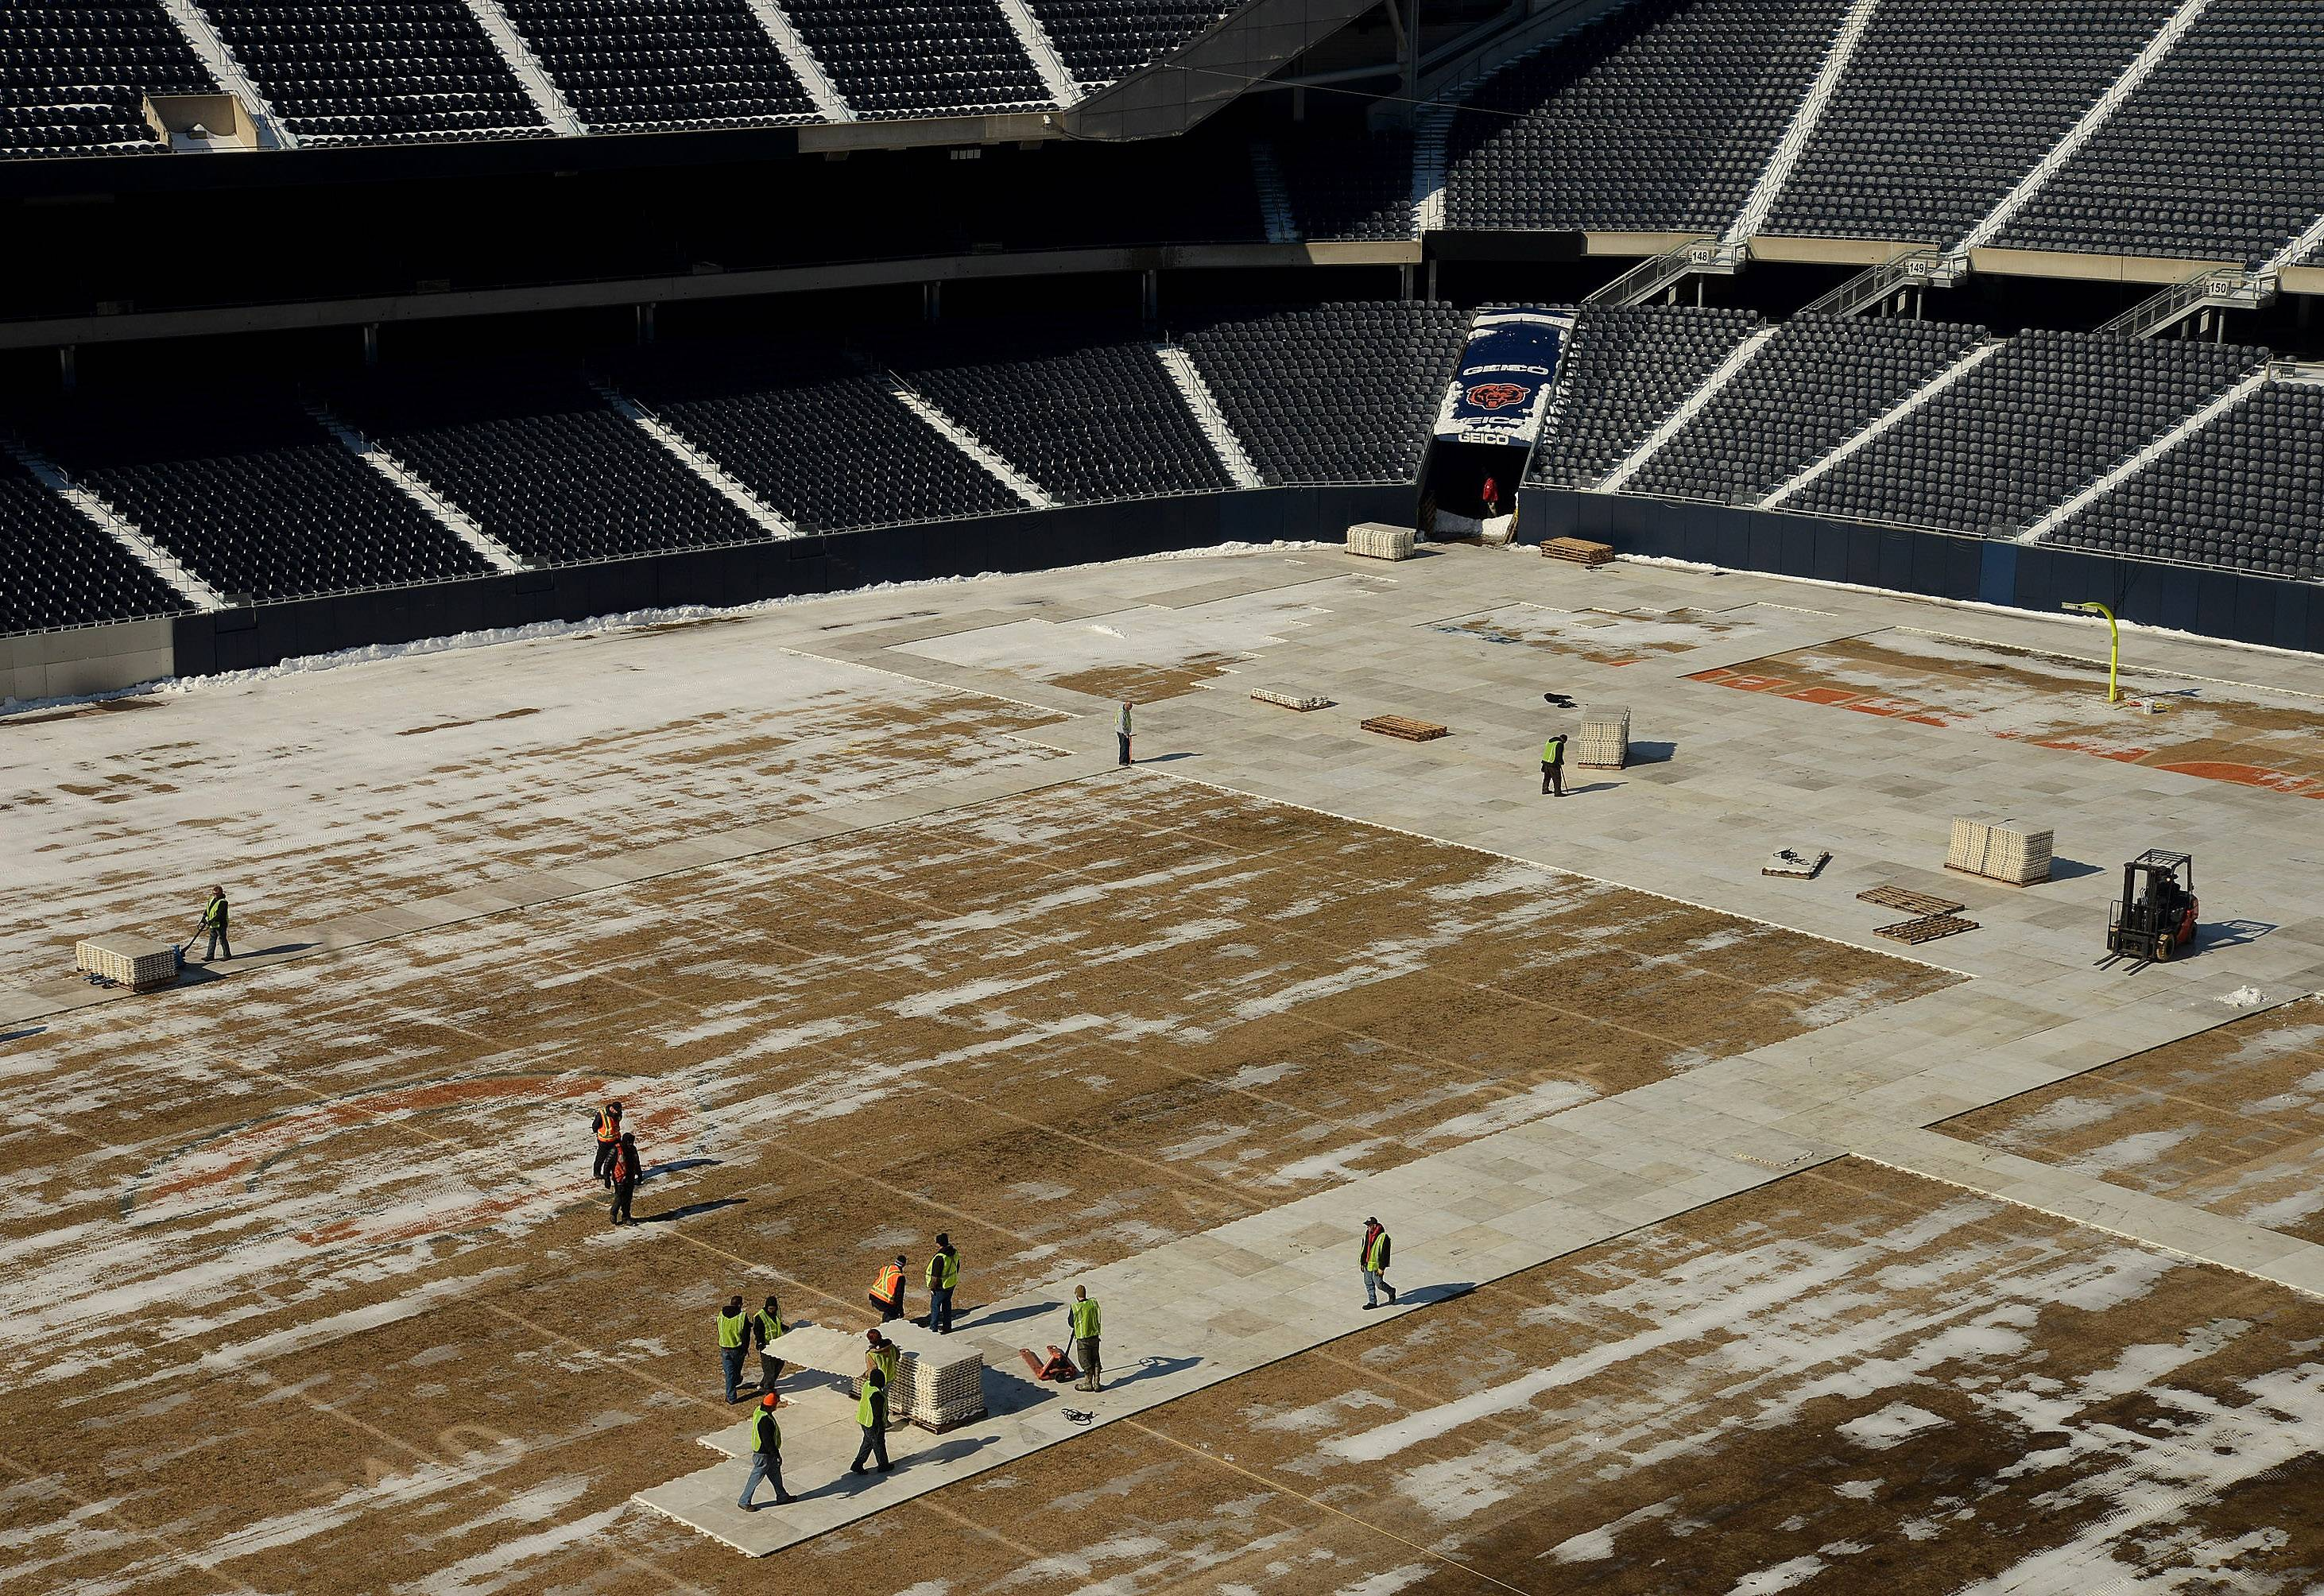 Crews start work preparing the Soldier Field gridiron for the NHL Stadium Series game between the Blackhawks and Penguins on March 1.